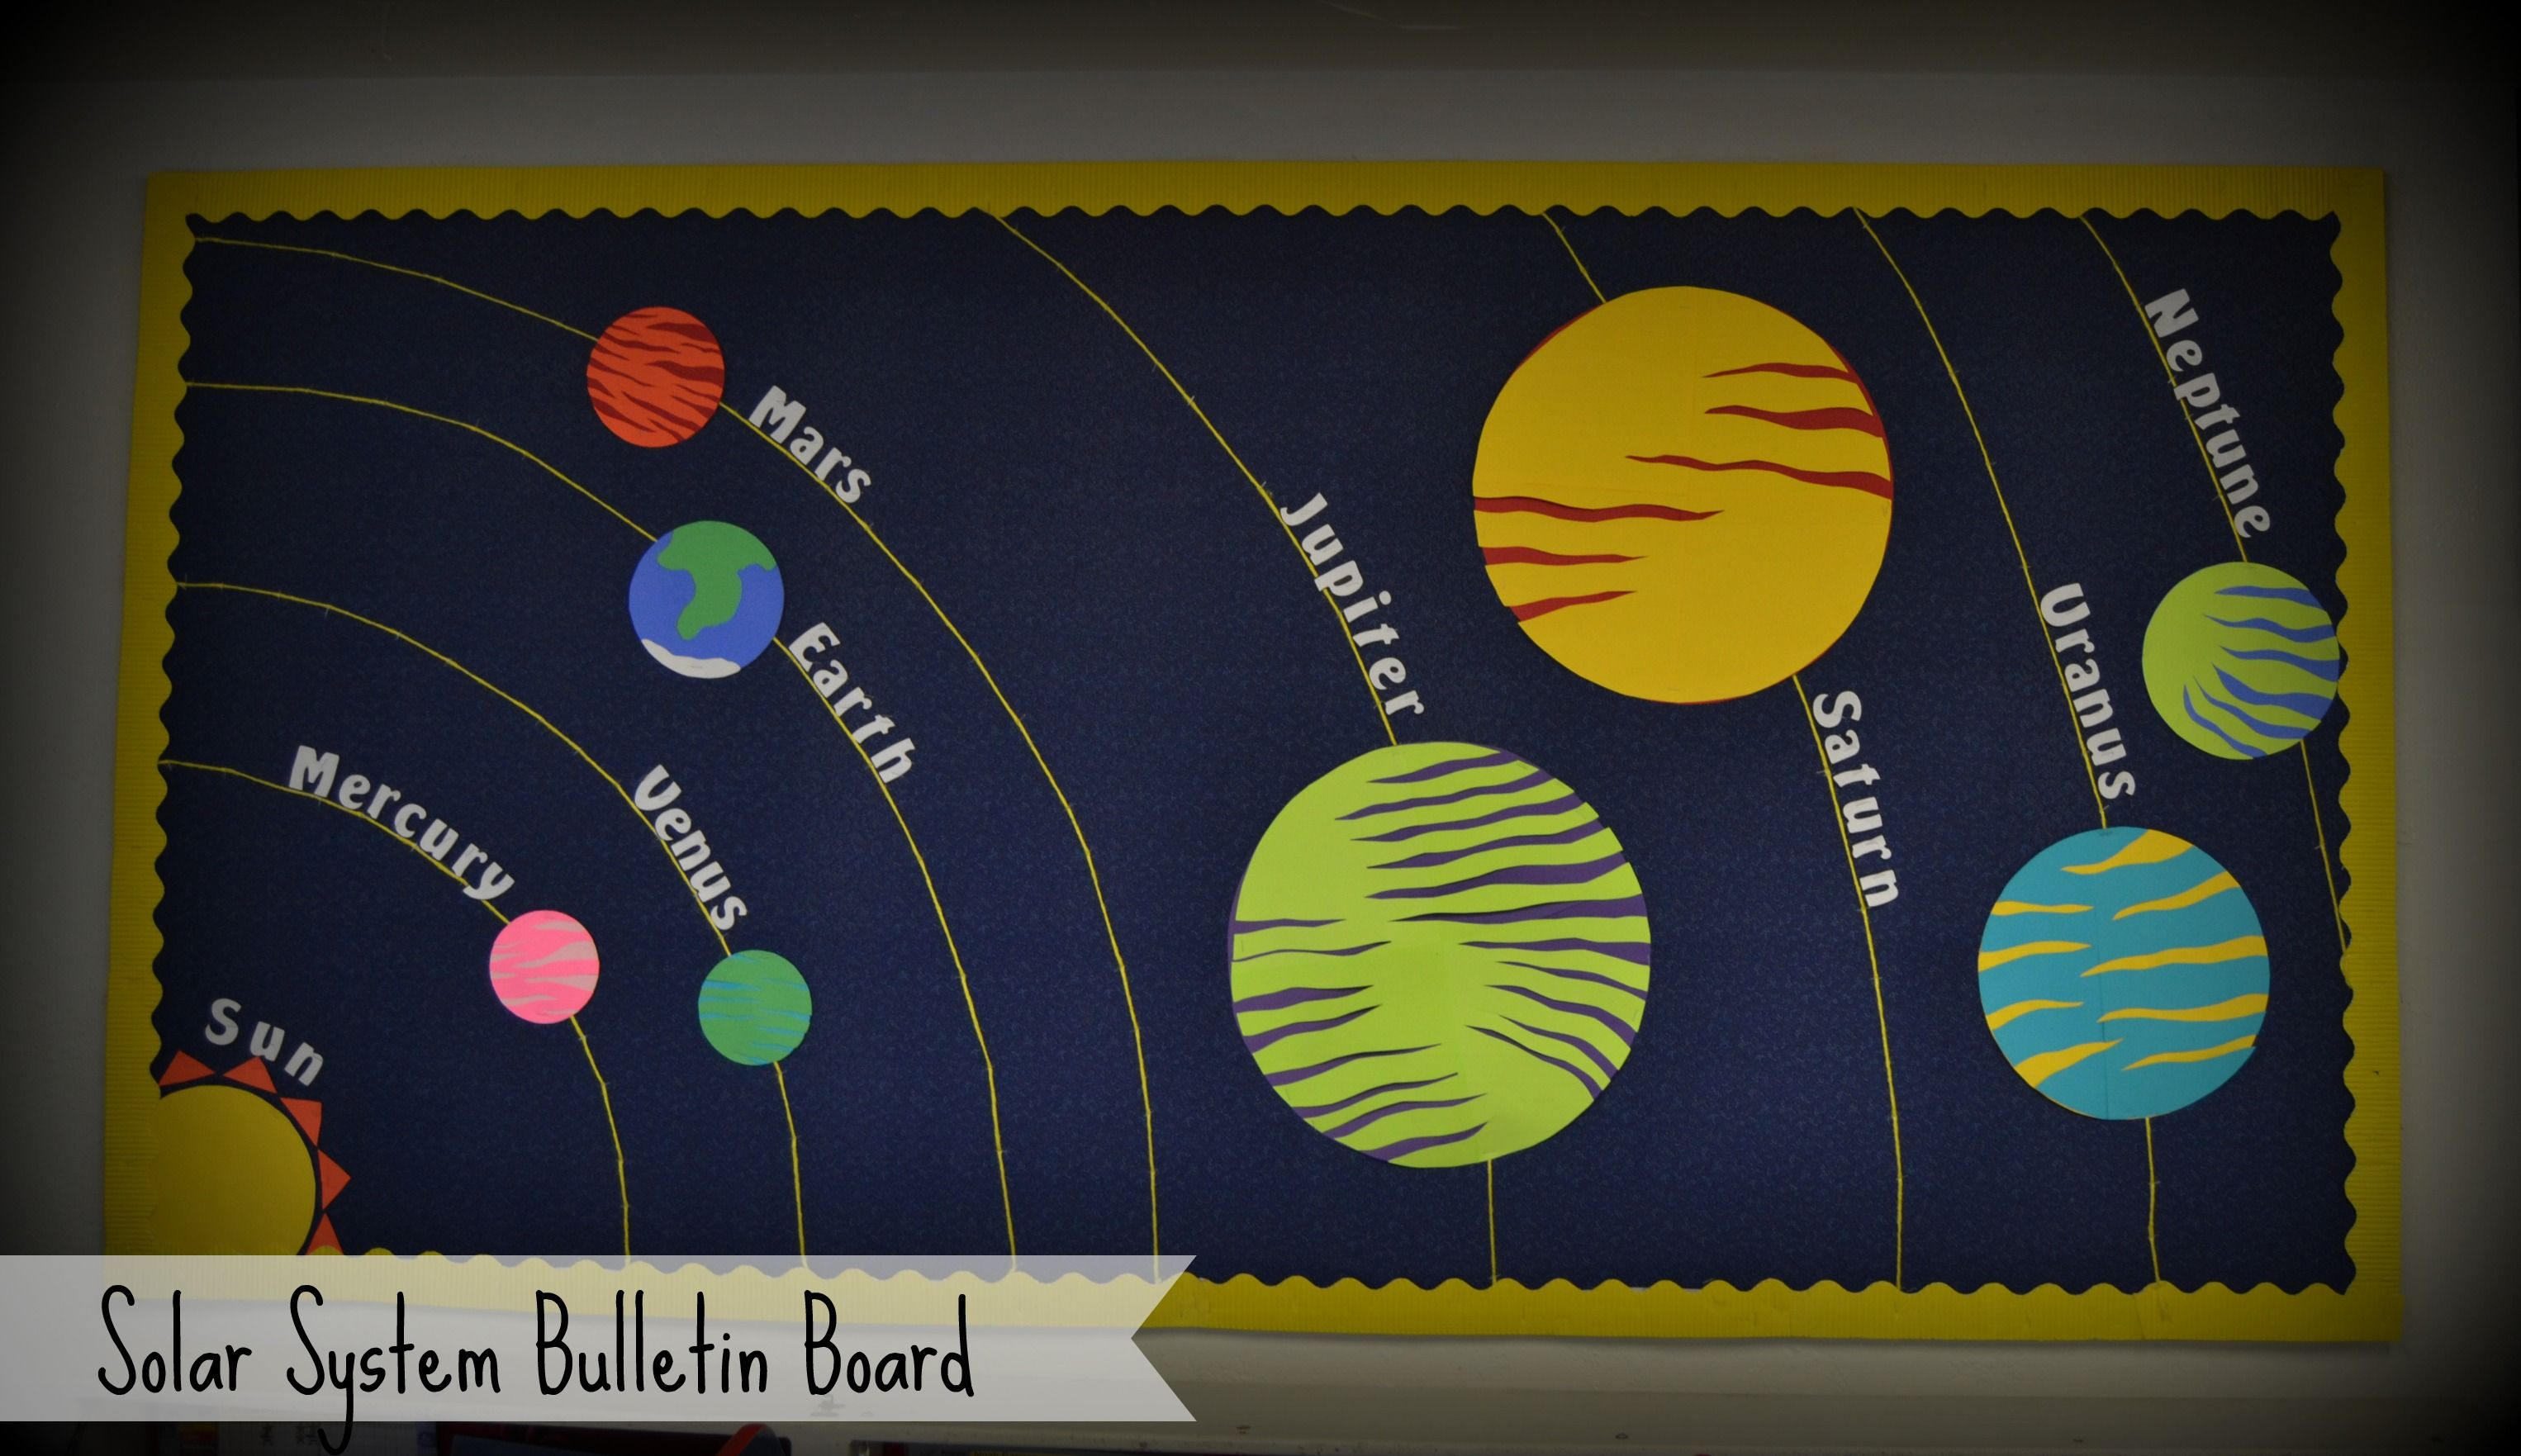 Solar System Bulletin Board I Made The Planets Out Of Construction Paper And Used Yellow Yarn To Outline Their Orbits